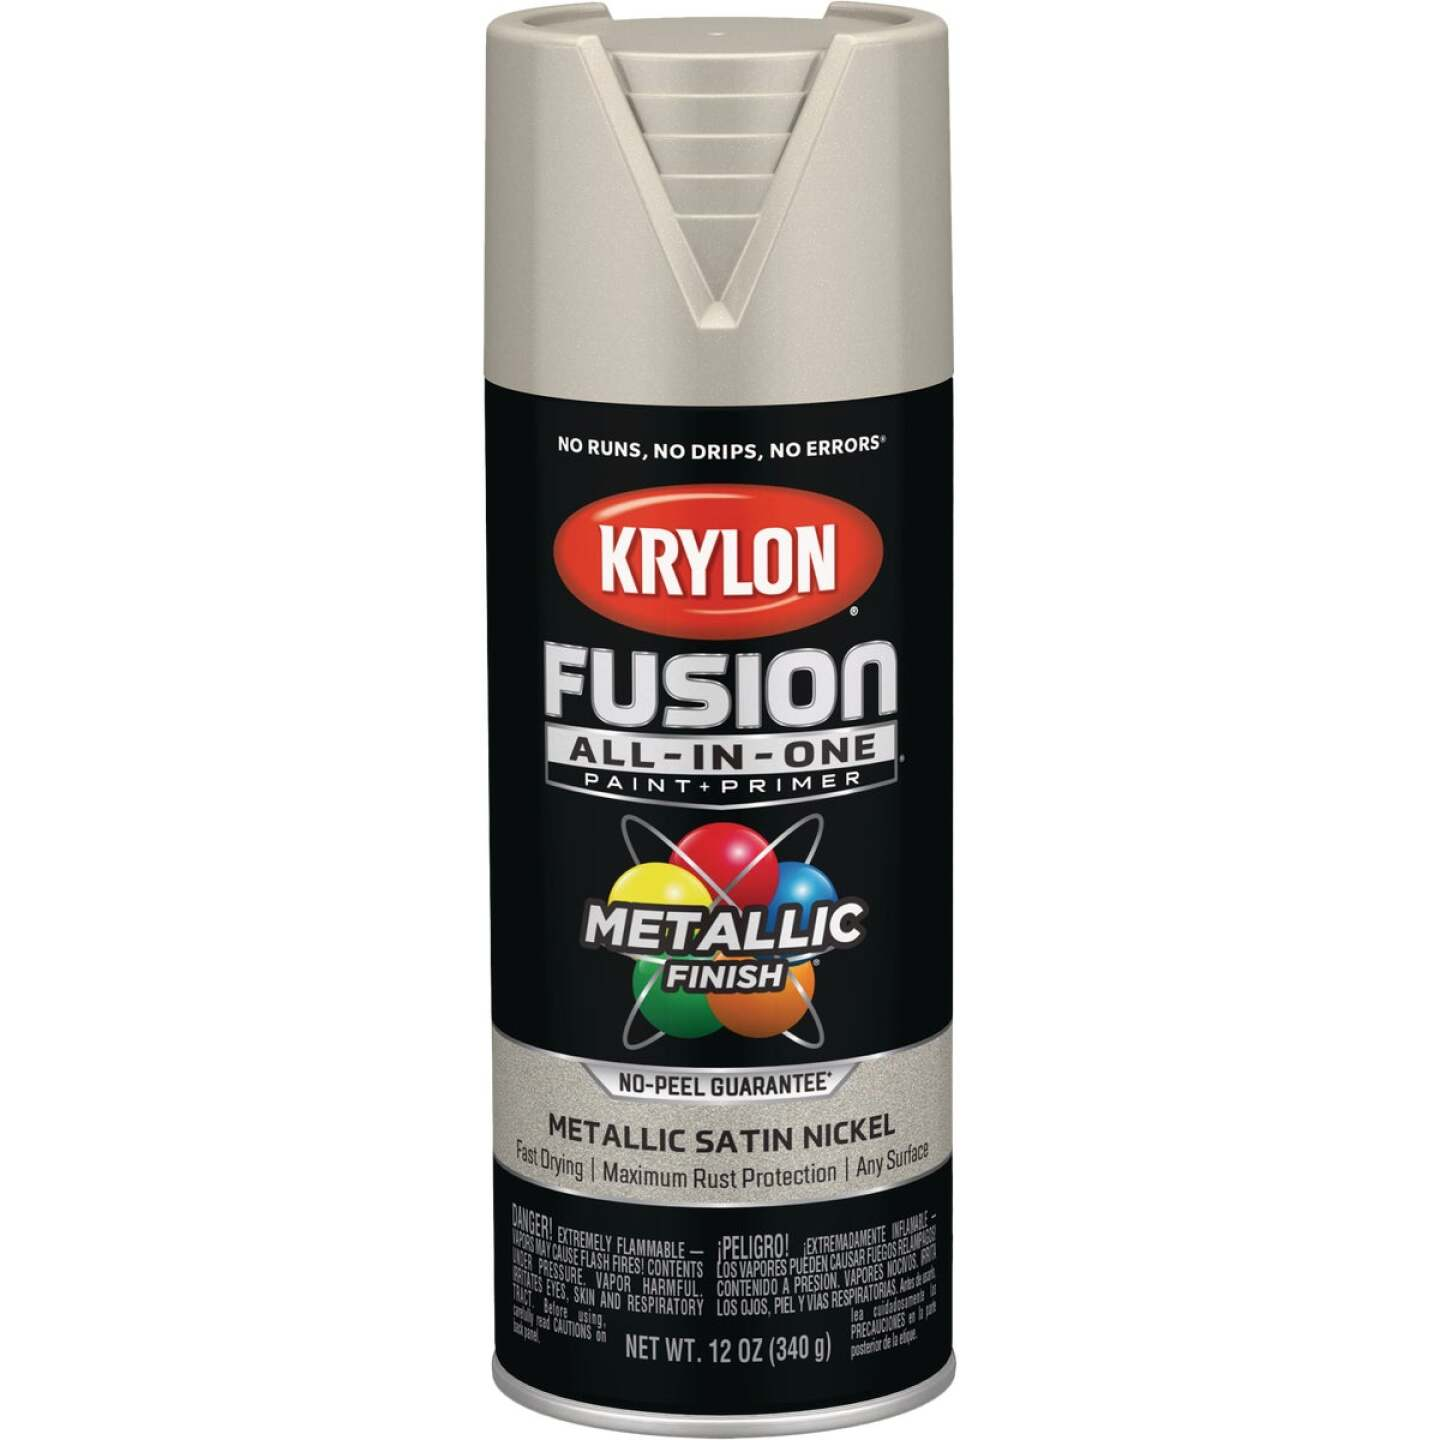 Krylon Fusion All-In-One Metallic Spray Paint & Primer, Satin Nickel Image 1